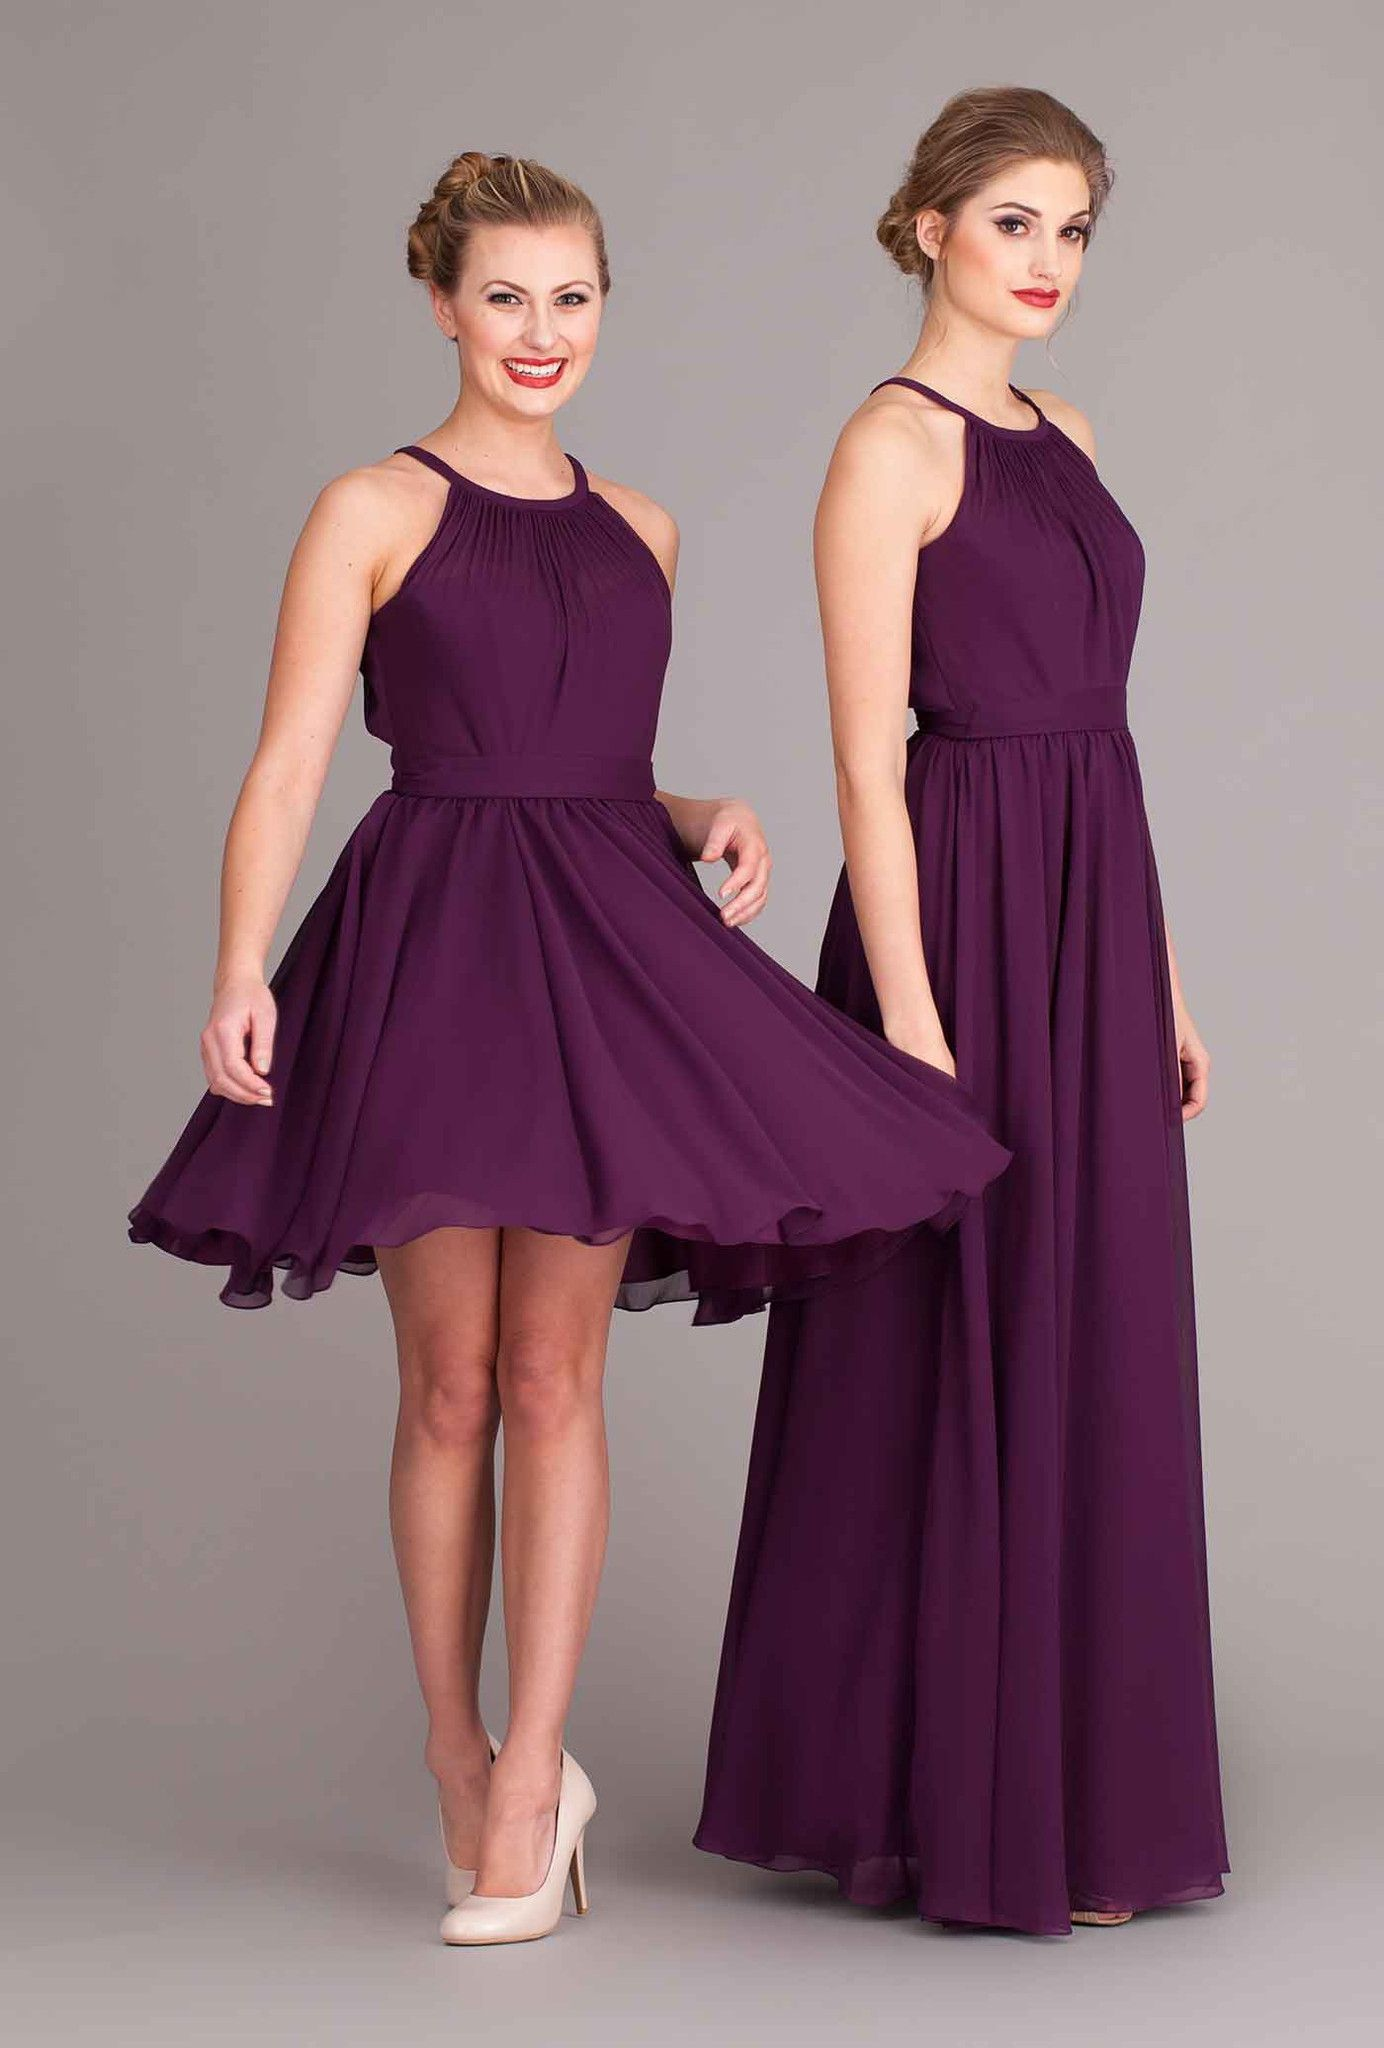 Sienna | Chiffon bridesmaid dresses, Shorts and Wedding